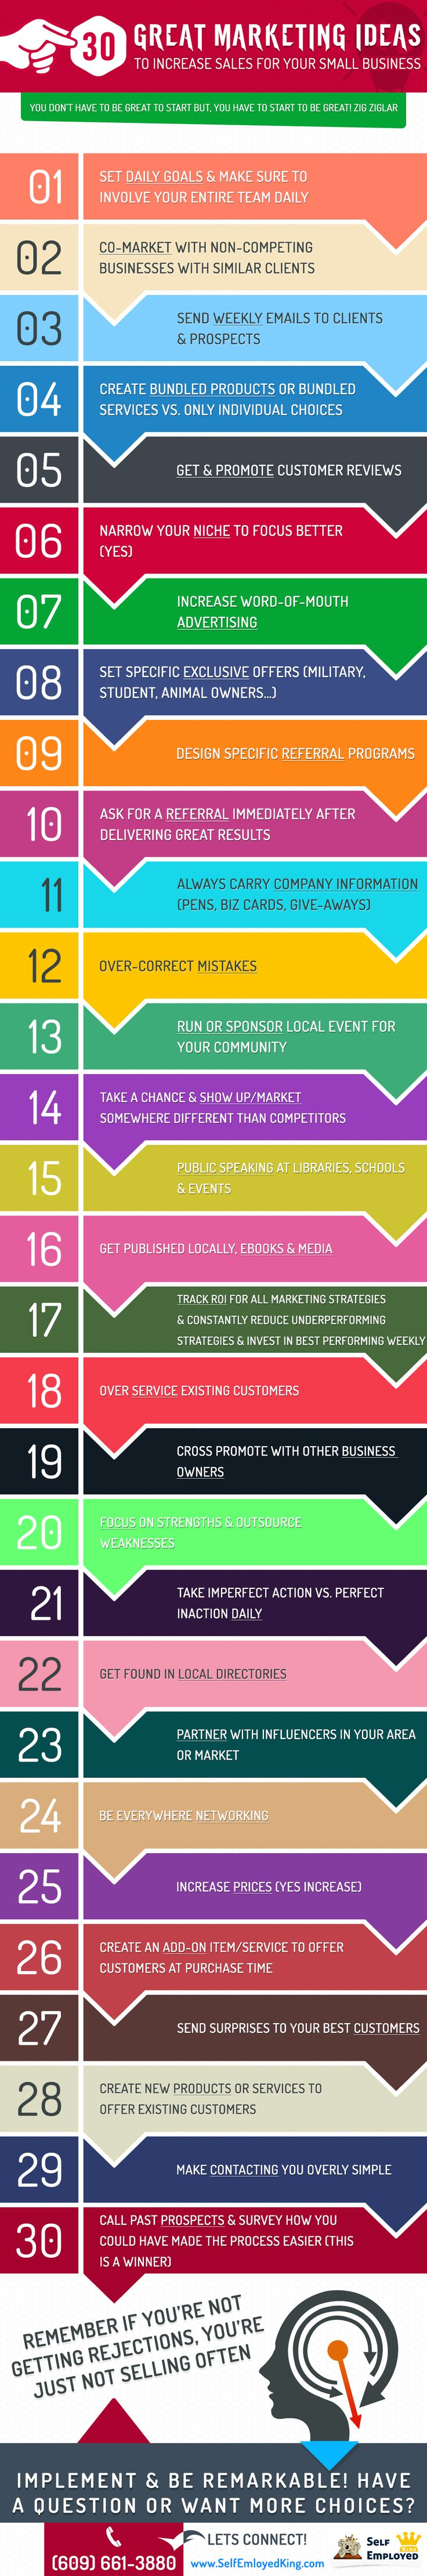 10 Entrepreneurs Share Awesome Marketing Ideas. Whether you're a retail, service or home based business owner, try to pick just 4 or 5 of these marketing strategies and implement them this week in your business.